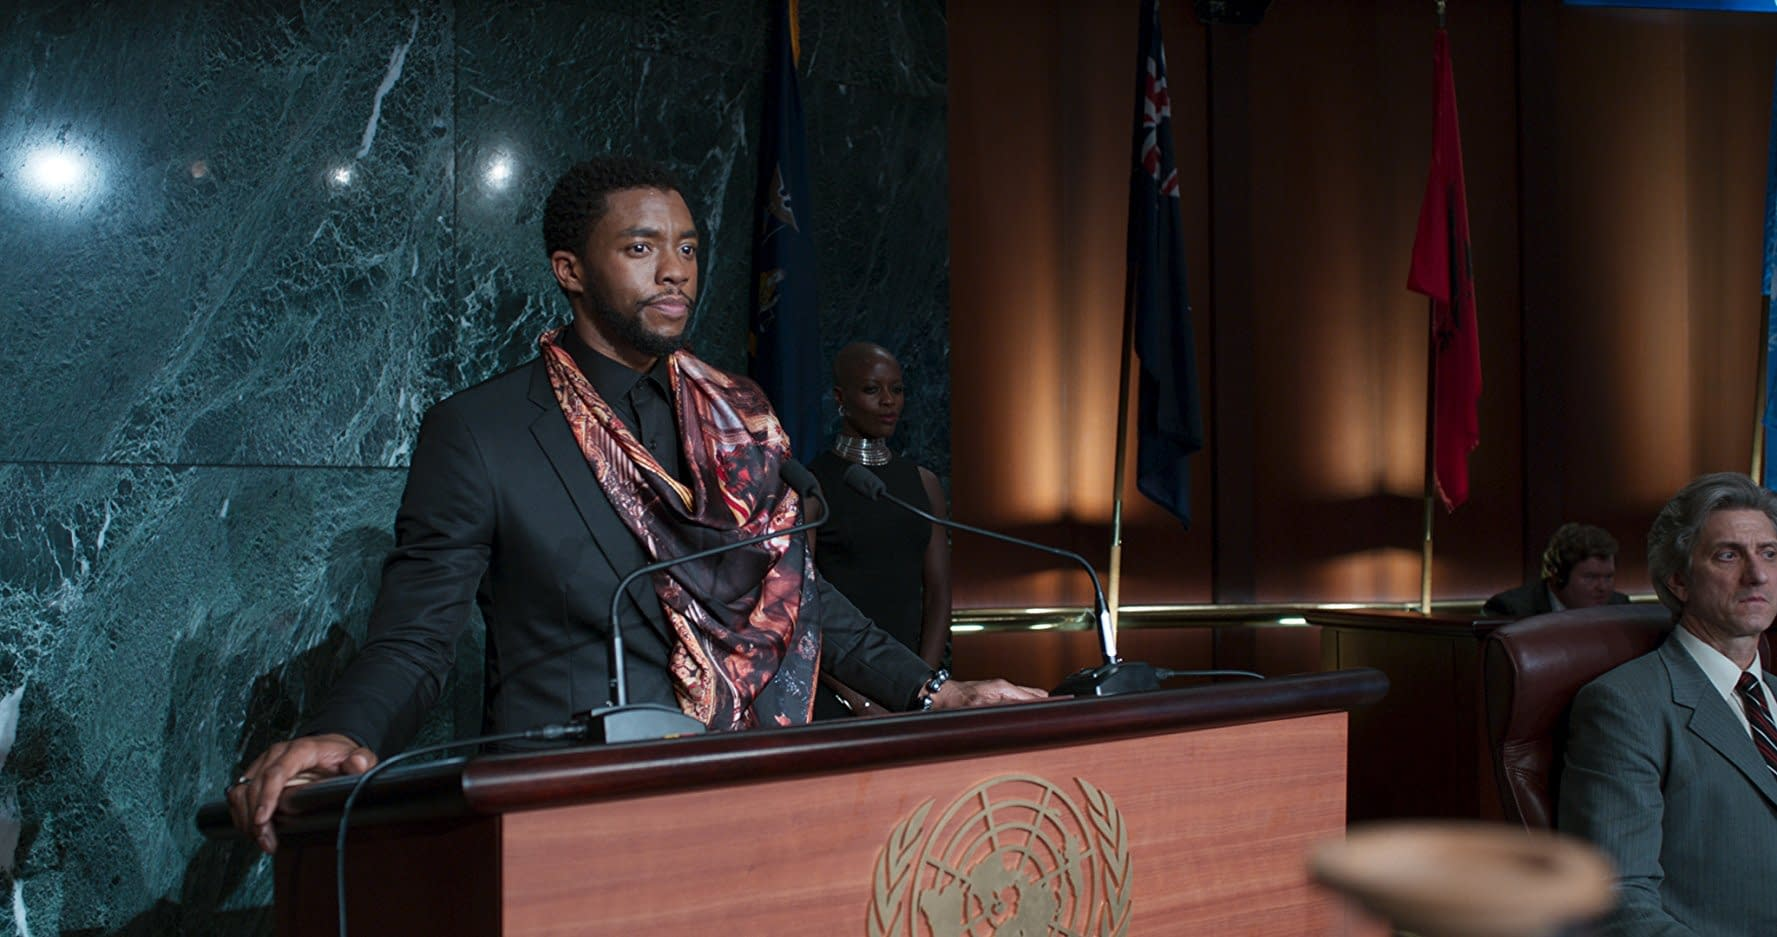 [SPOILERS] Black Panther: Ryan Coogler Talks the 2 After-Credits Scenes